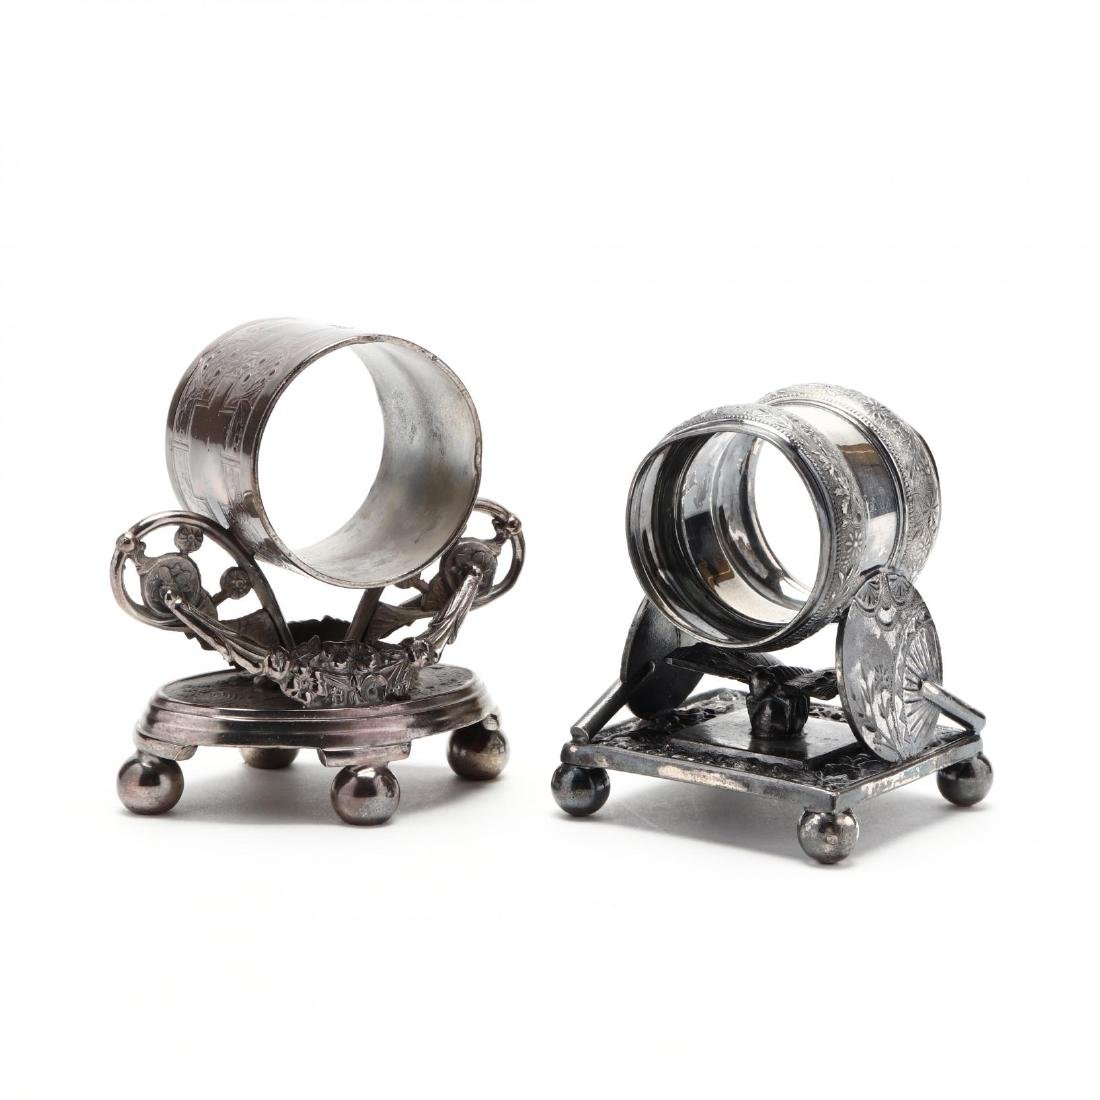 Two Late Victorian Silver Plate Napkin Rings